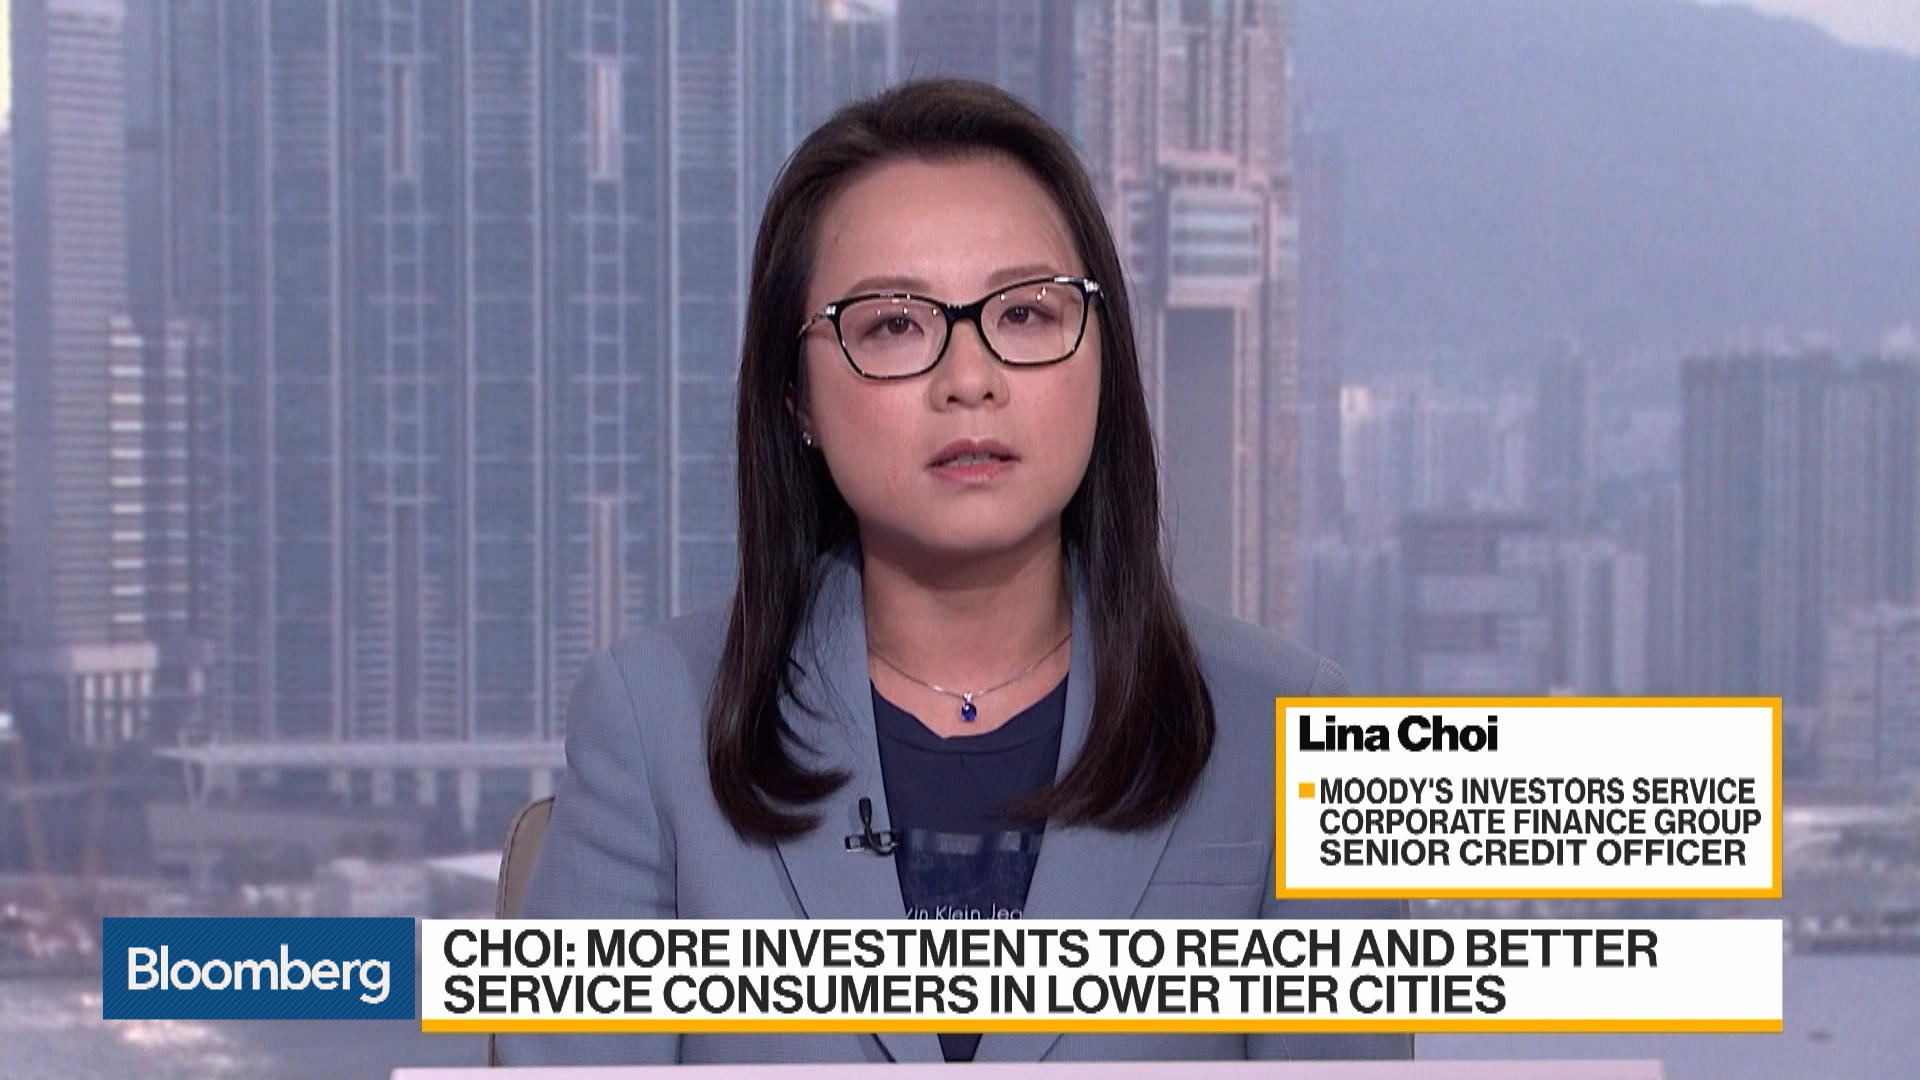 Moody's Investors Services Senior Credit Officer Lina Choi on Baidu Earnings, China Tech Outlook